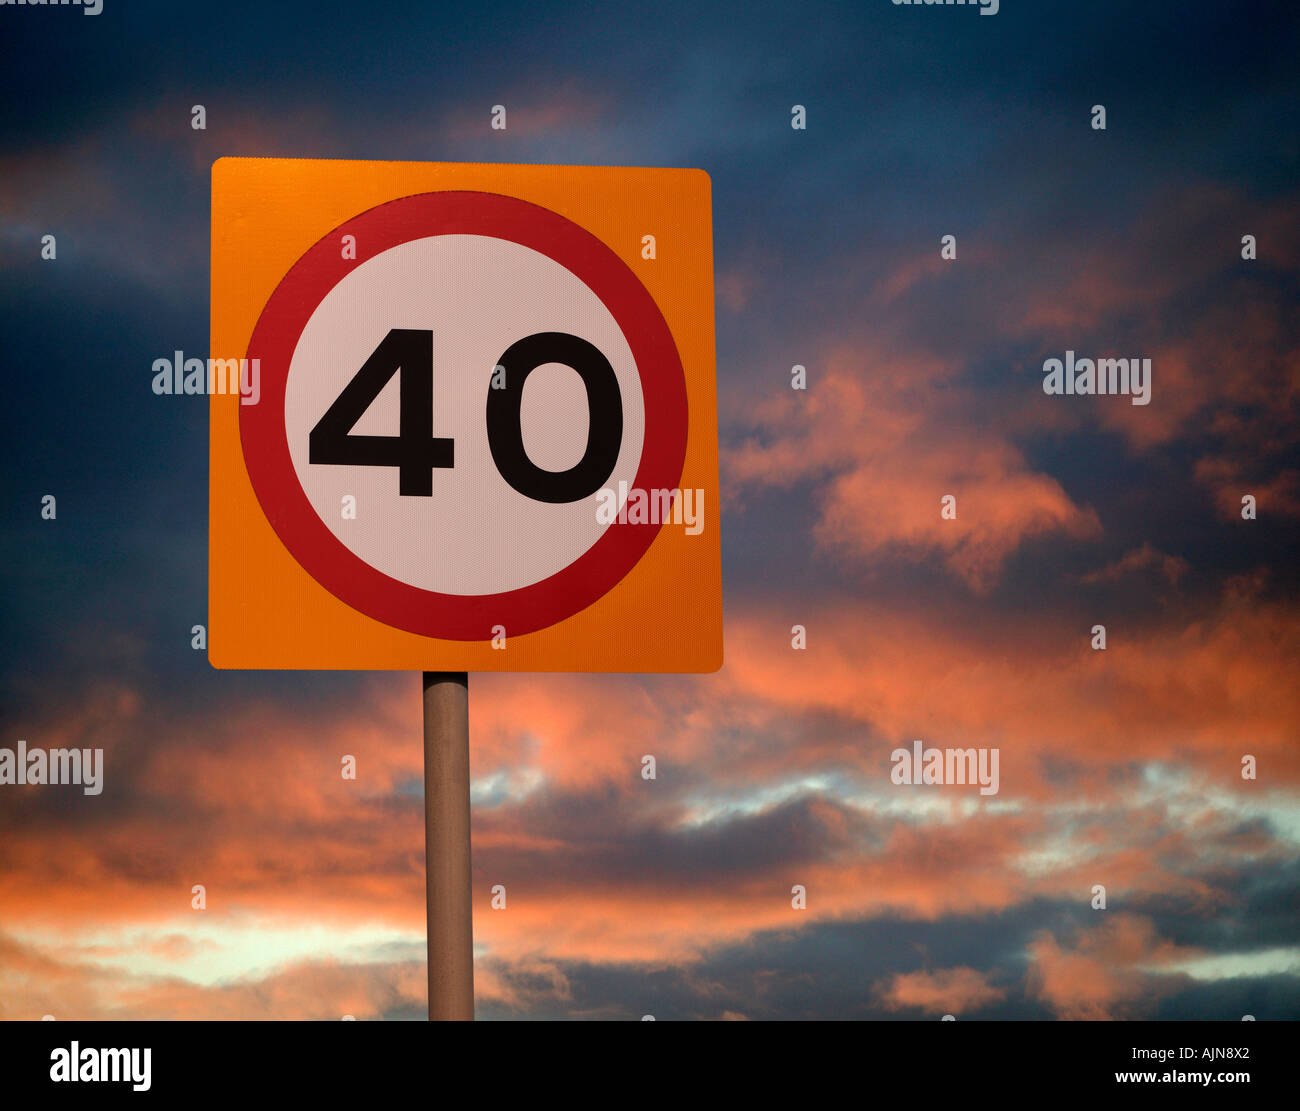 FORTY MILE AN HOUR ROAD SPEED LIMIT SIGN WITH TWILIGHT SKY BACKGROUND - Stock Image